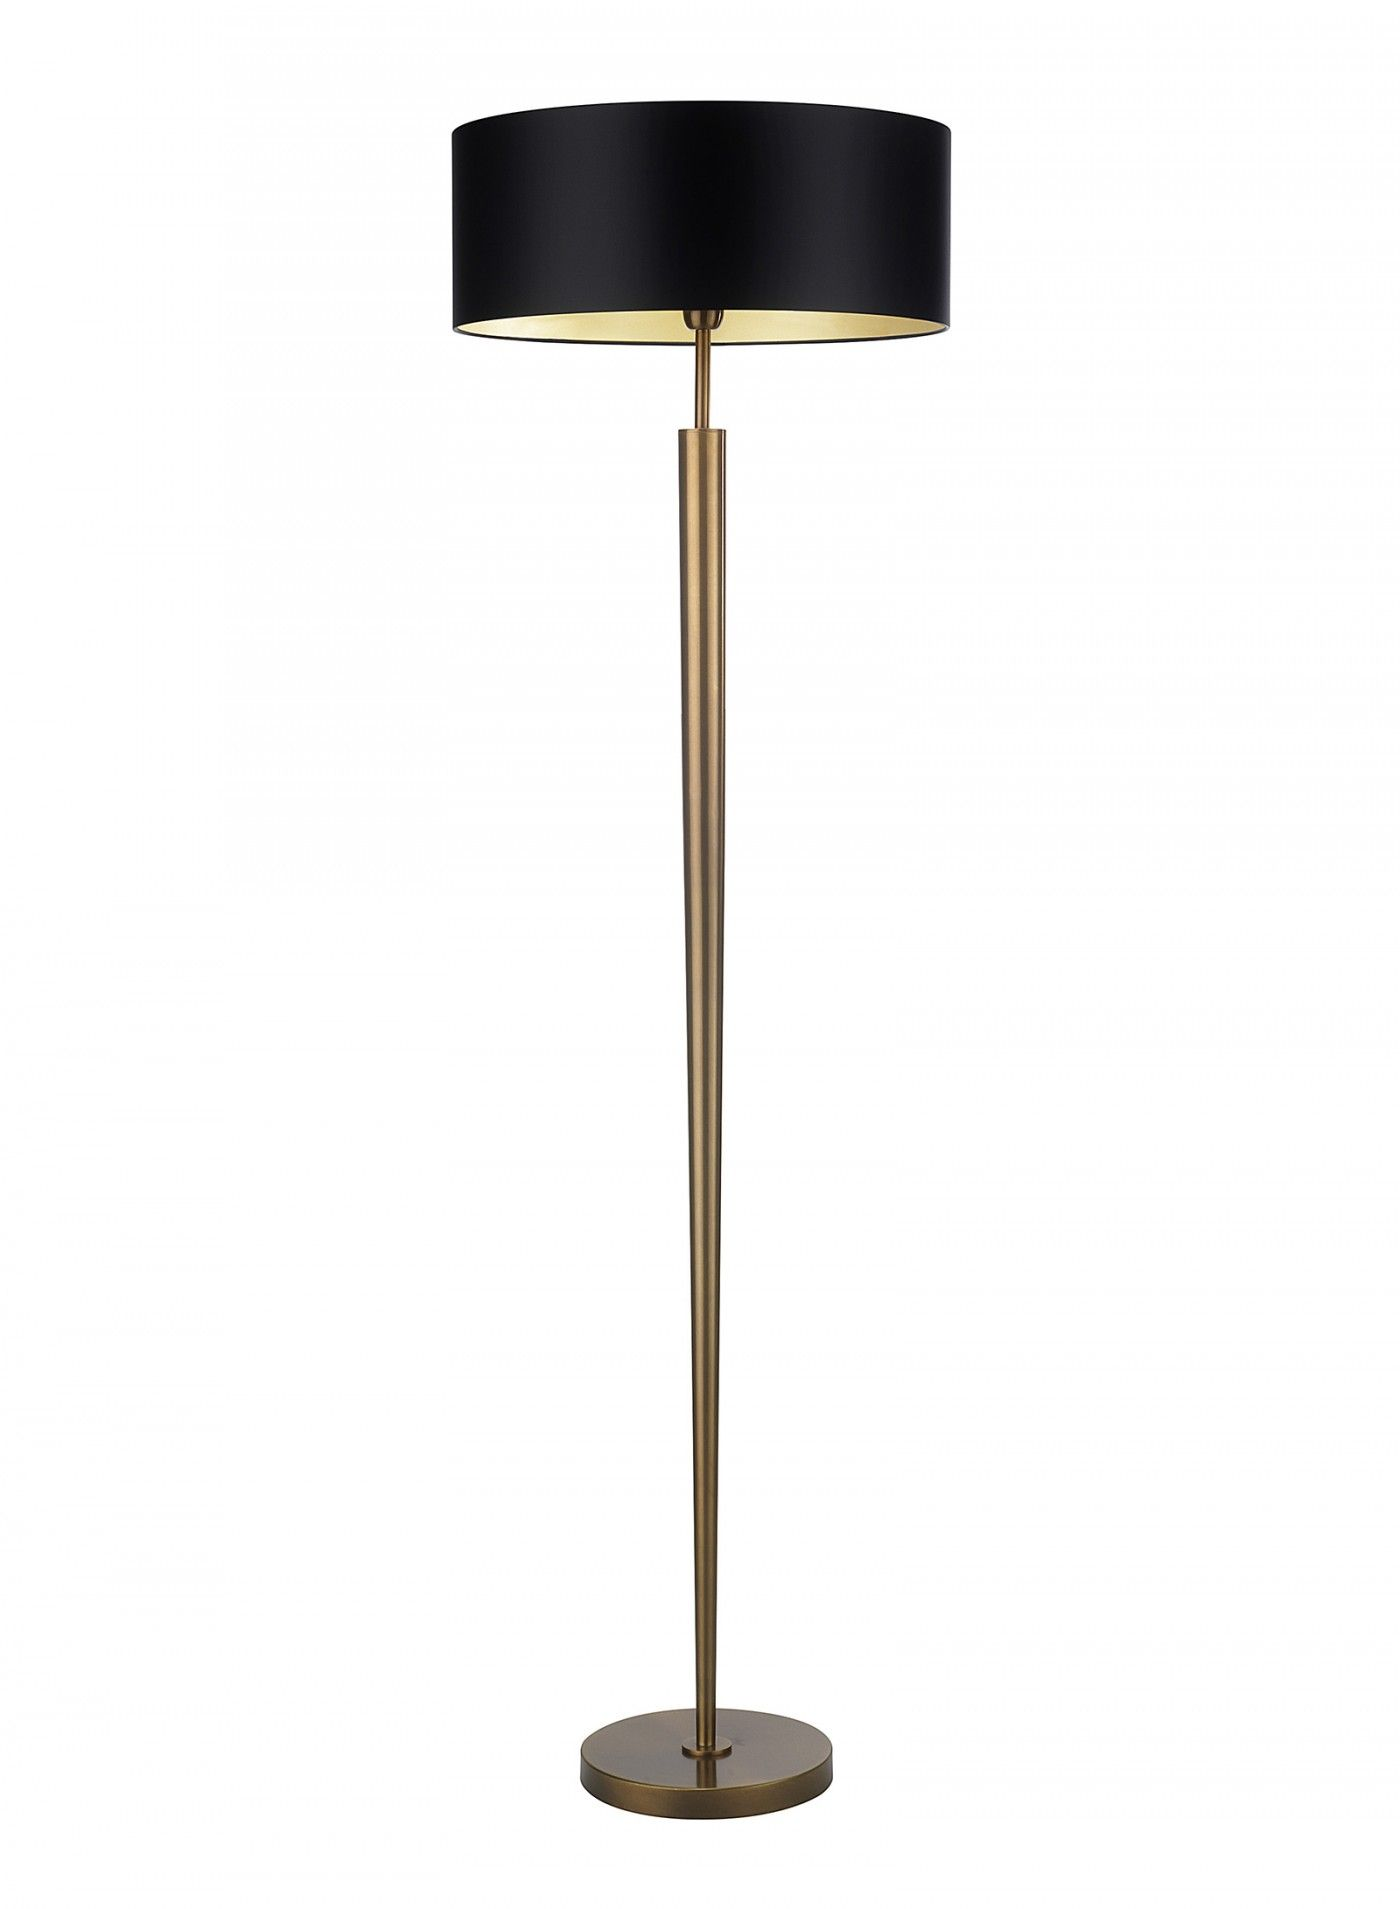 Torchere Antique Brass Floor Lamp   Heathfield U0026 Co Images